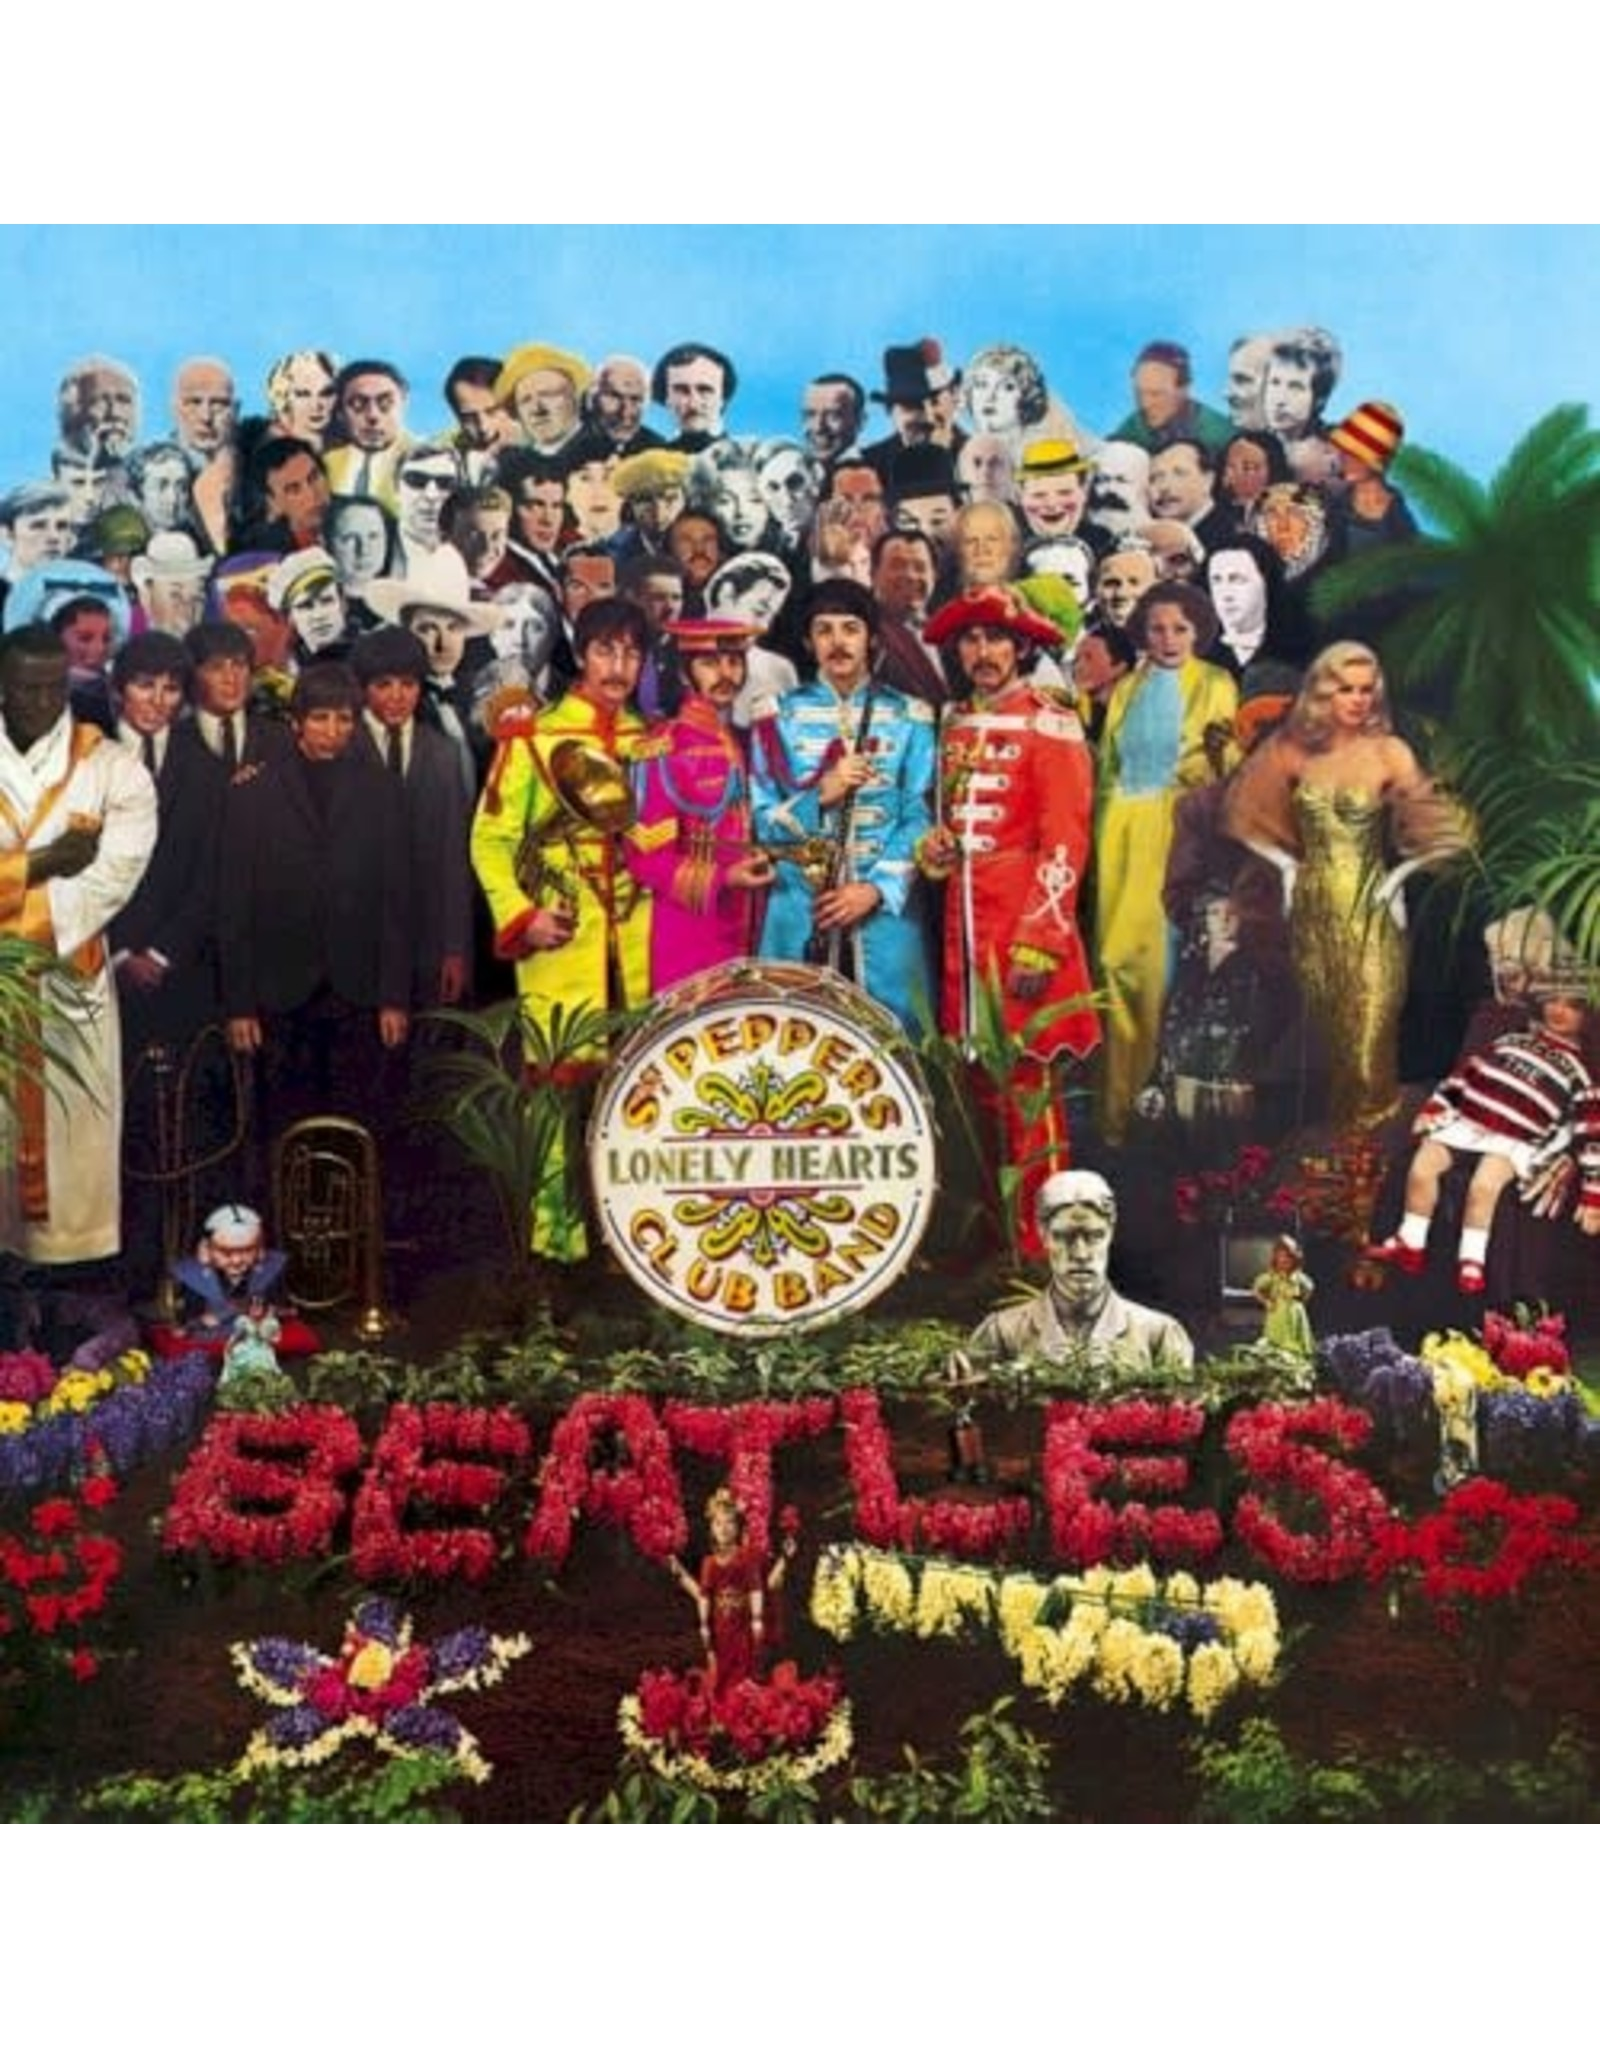 Beatles - Sgt Pepper's Lonely Hearts Club Band CD